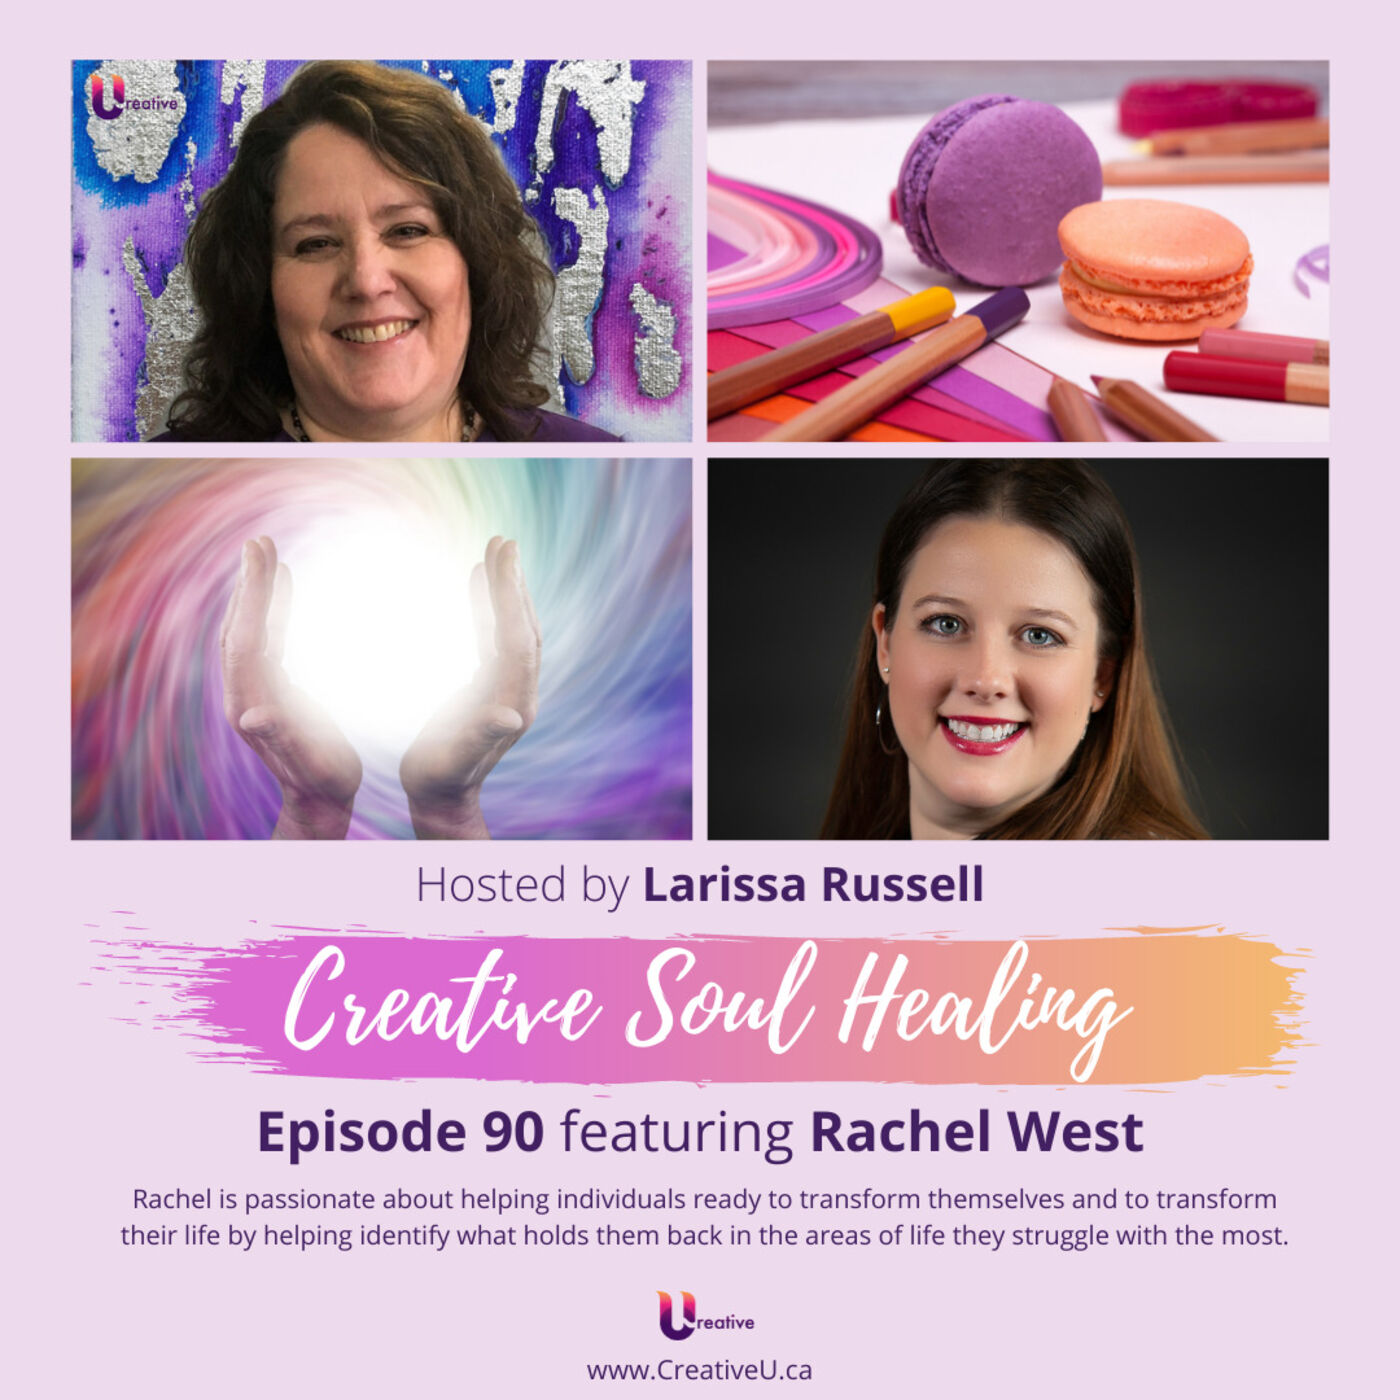 Episode 90 featuring Rachel West: Are you Just Going Through the Motions of Life?